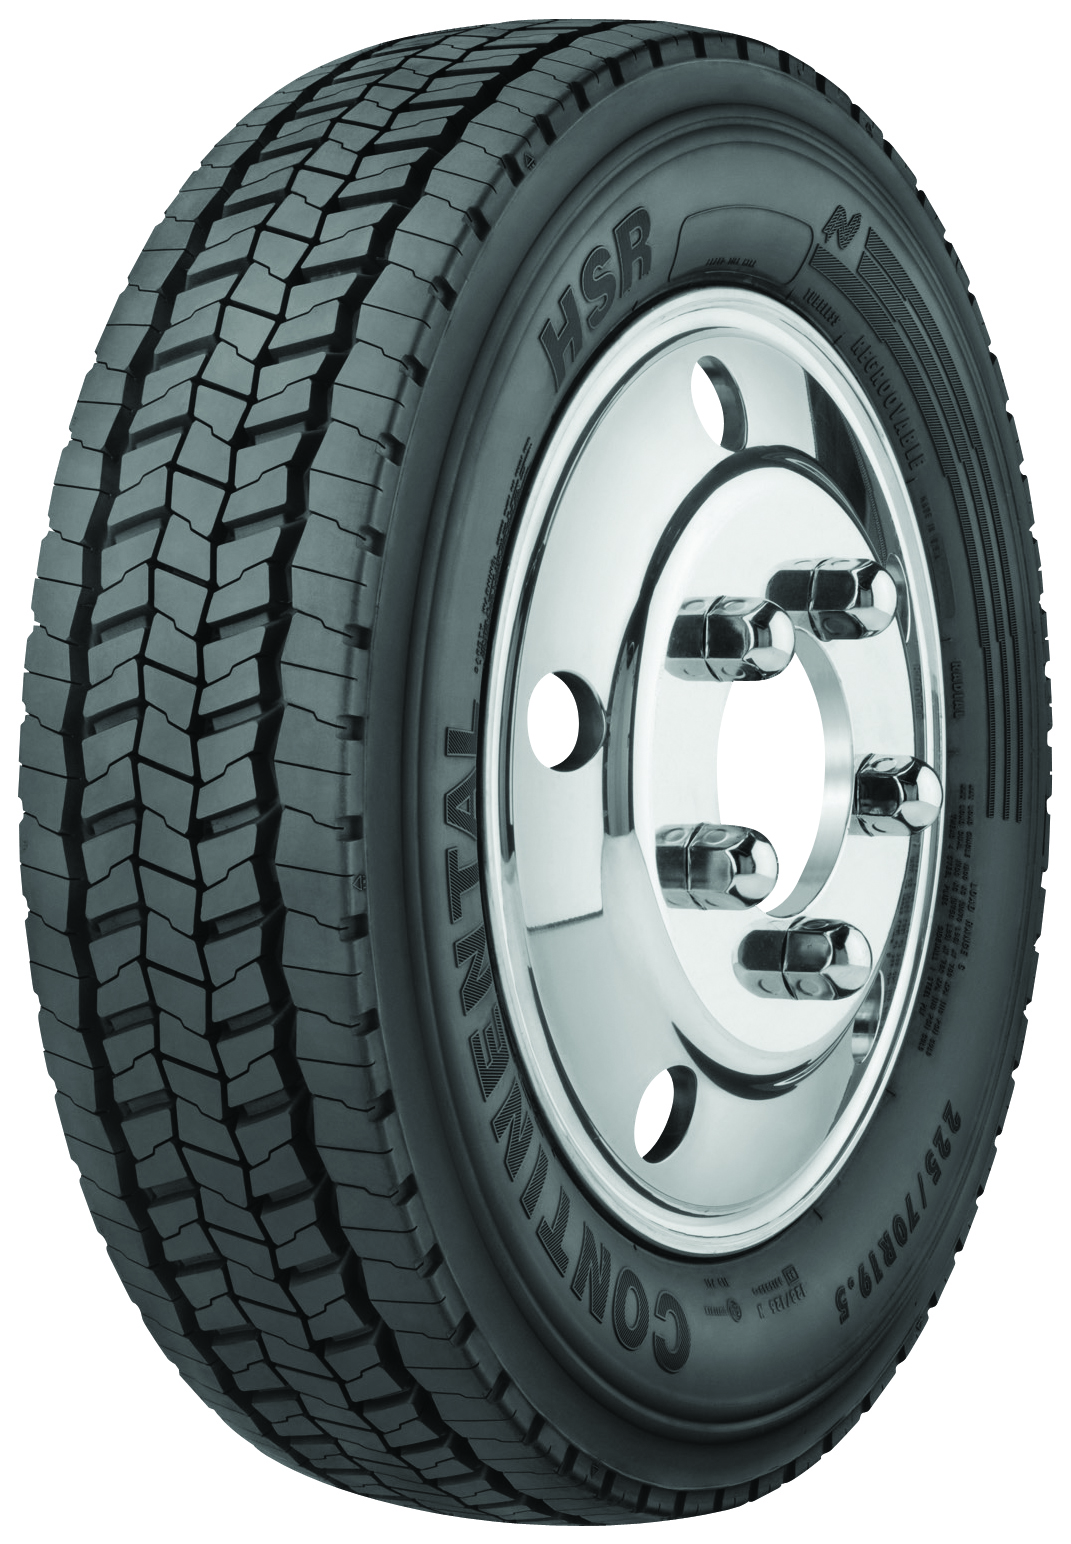 Tire clipart #5, Download drawings